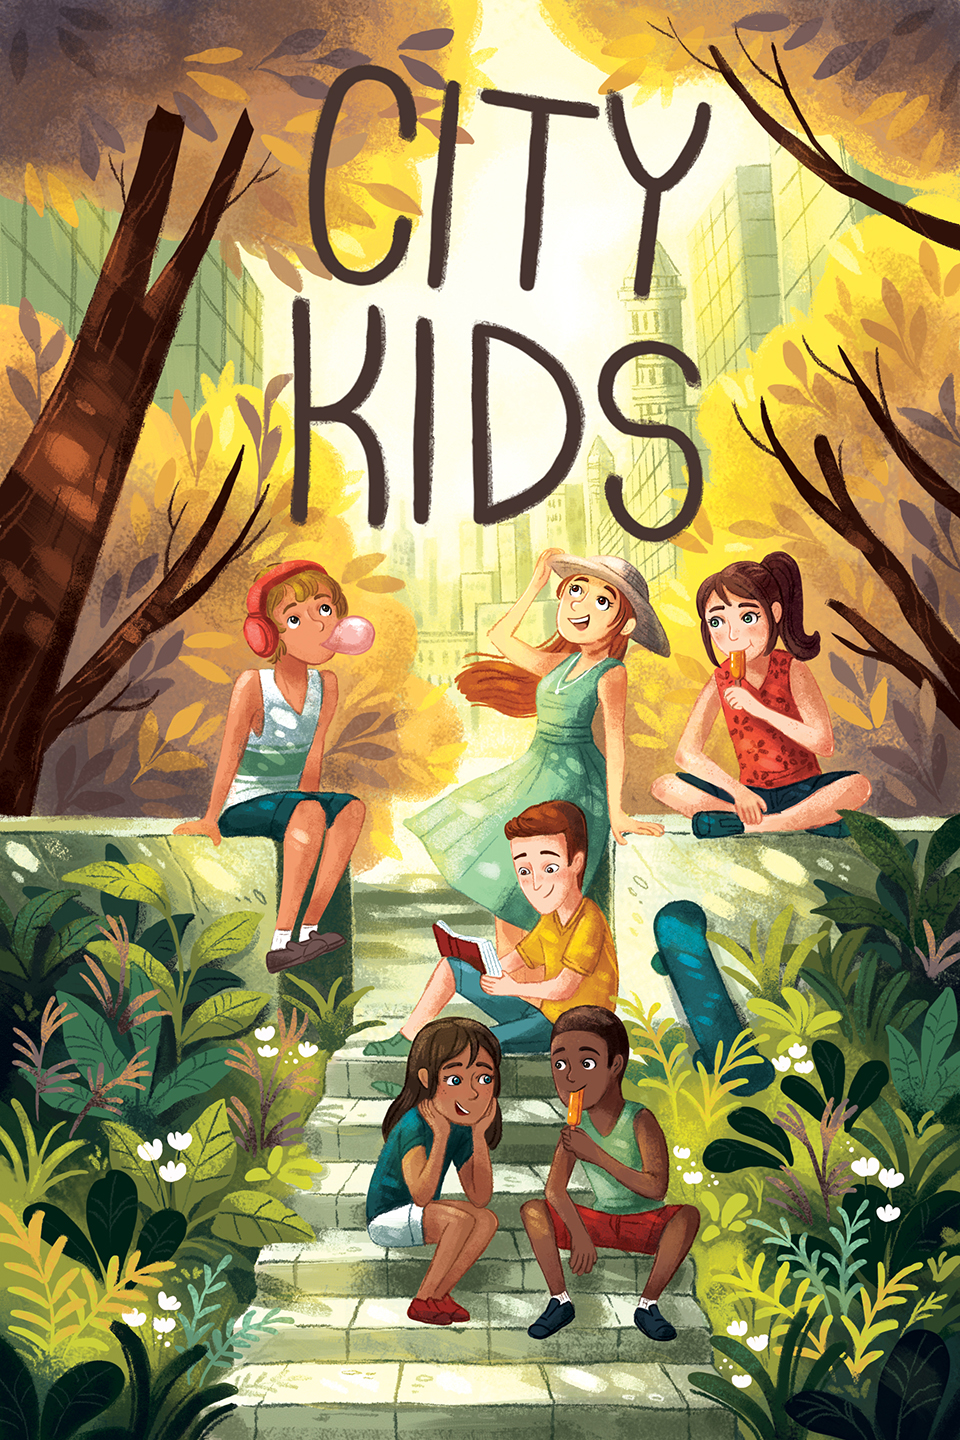 Web_City kids_text_Cover_titlepage_summer_city_outside_teens_middlegrade_friends_boys_girls.jpg